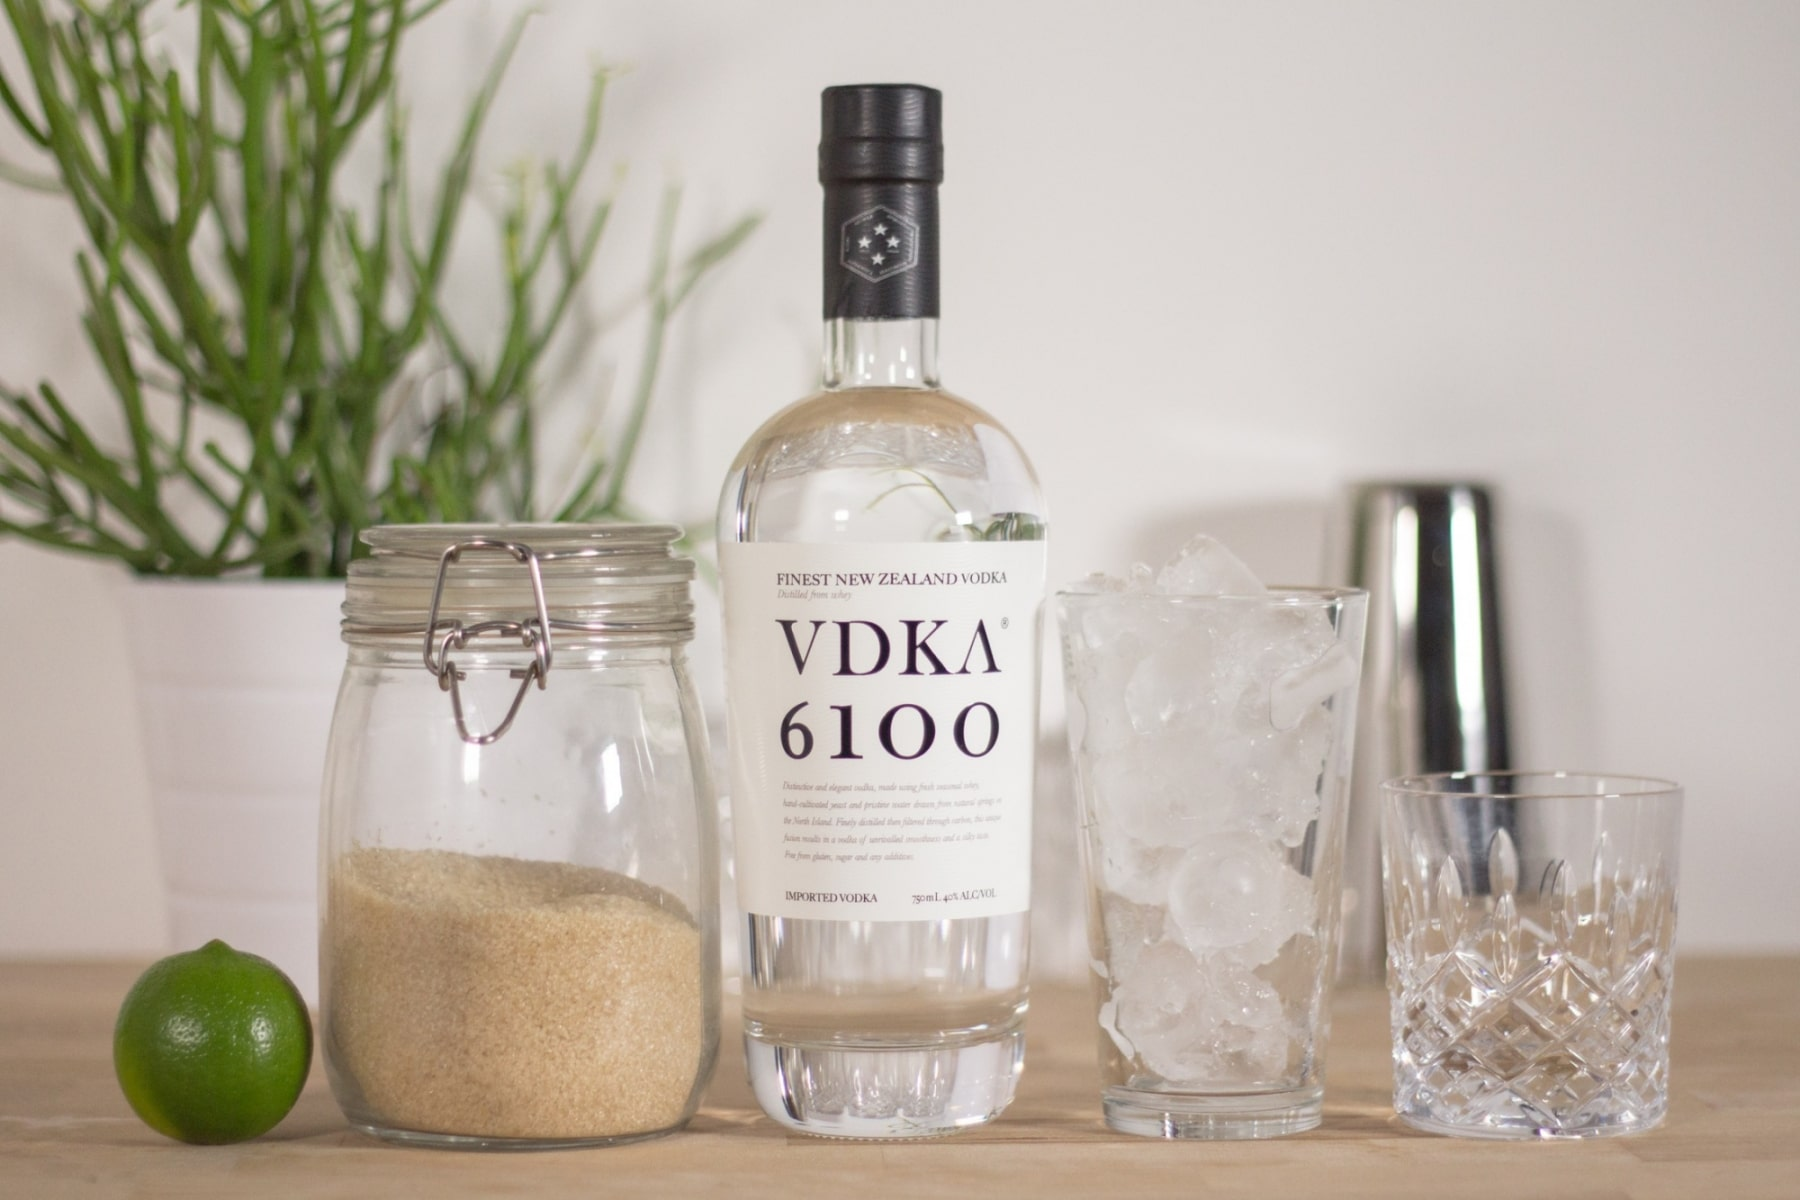 vdka 6100 bottle view